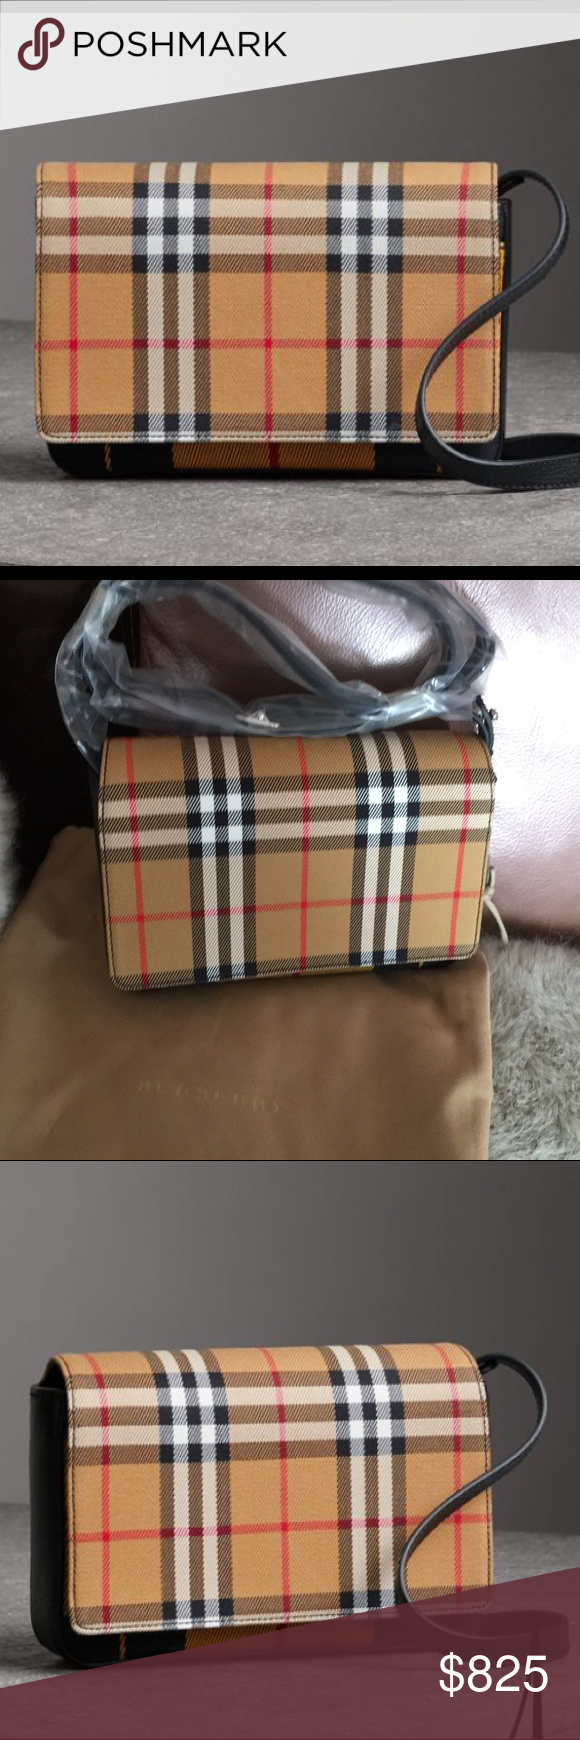 Burberry crossbody bag Authentic Burberry crossbody! Tartan mix Hampshire  wallet on chain Brand new with tags and dust bag Color  Antique  Yellow Black ... 4f2a5a506f5d4